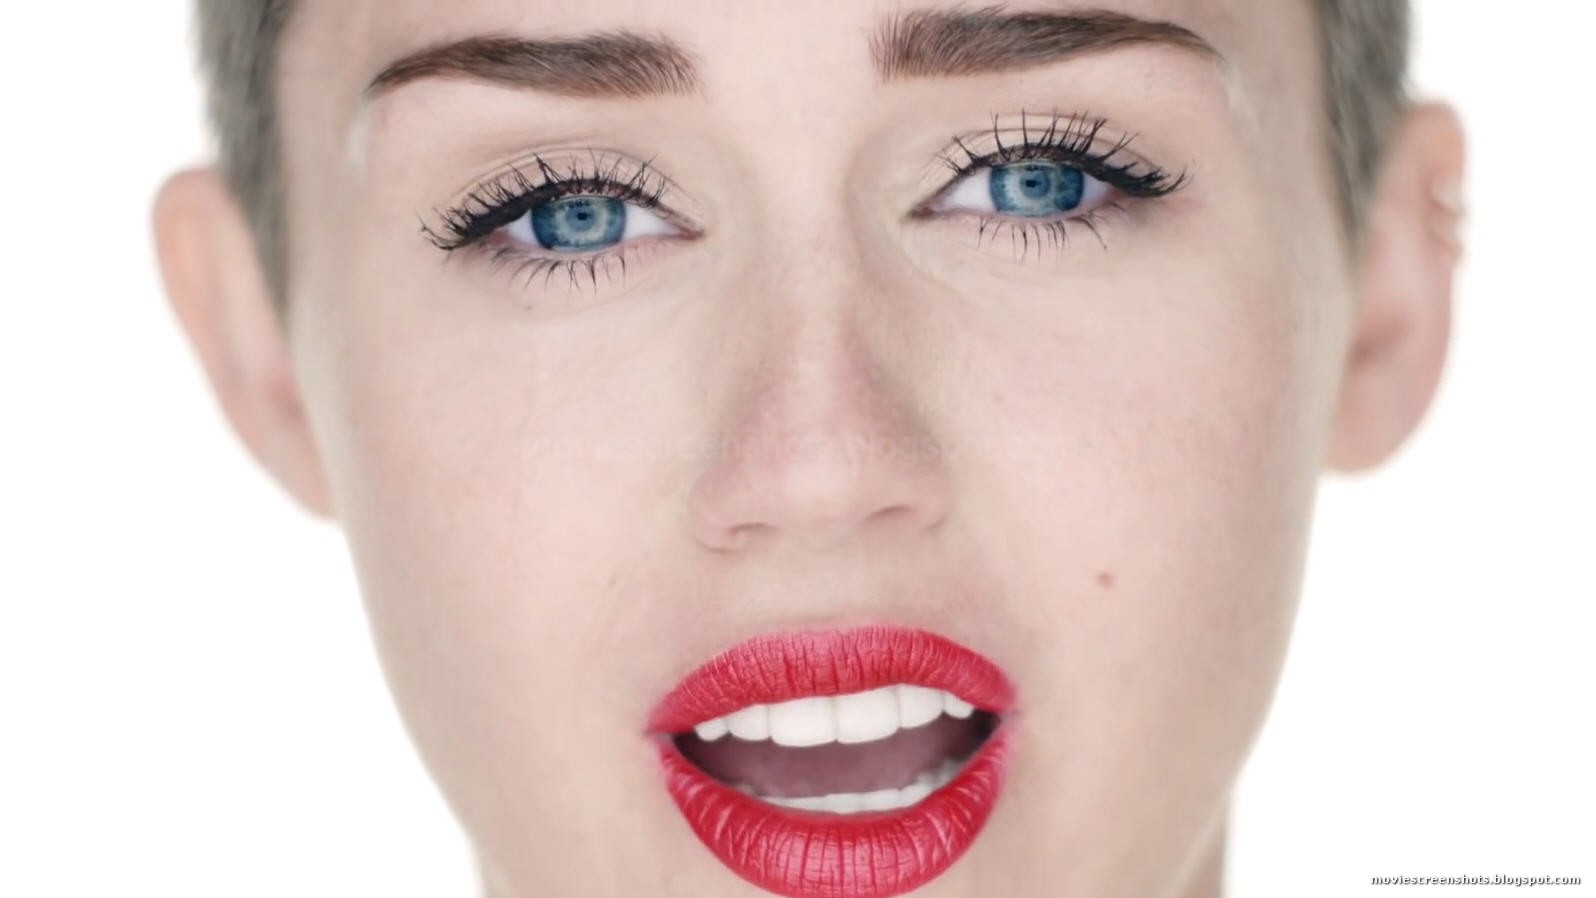 Miley Cyrus Wrecking Ball Uncensored